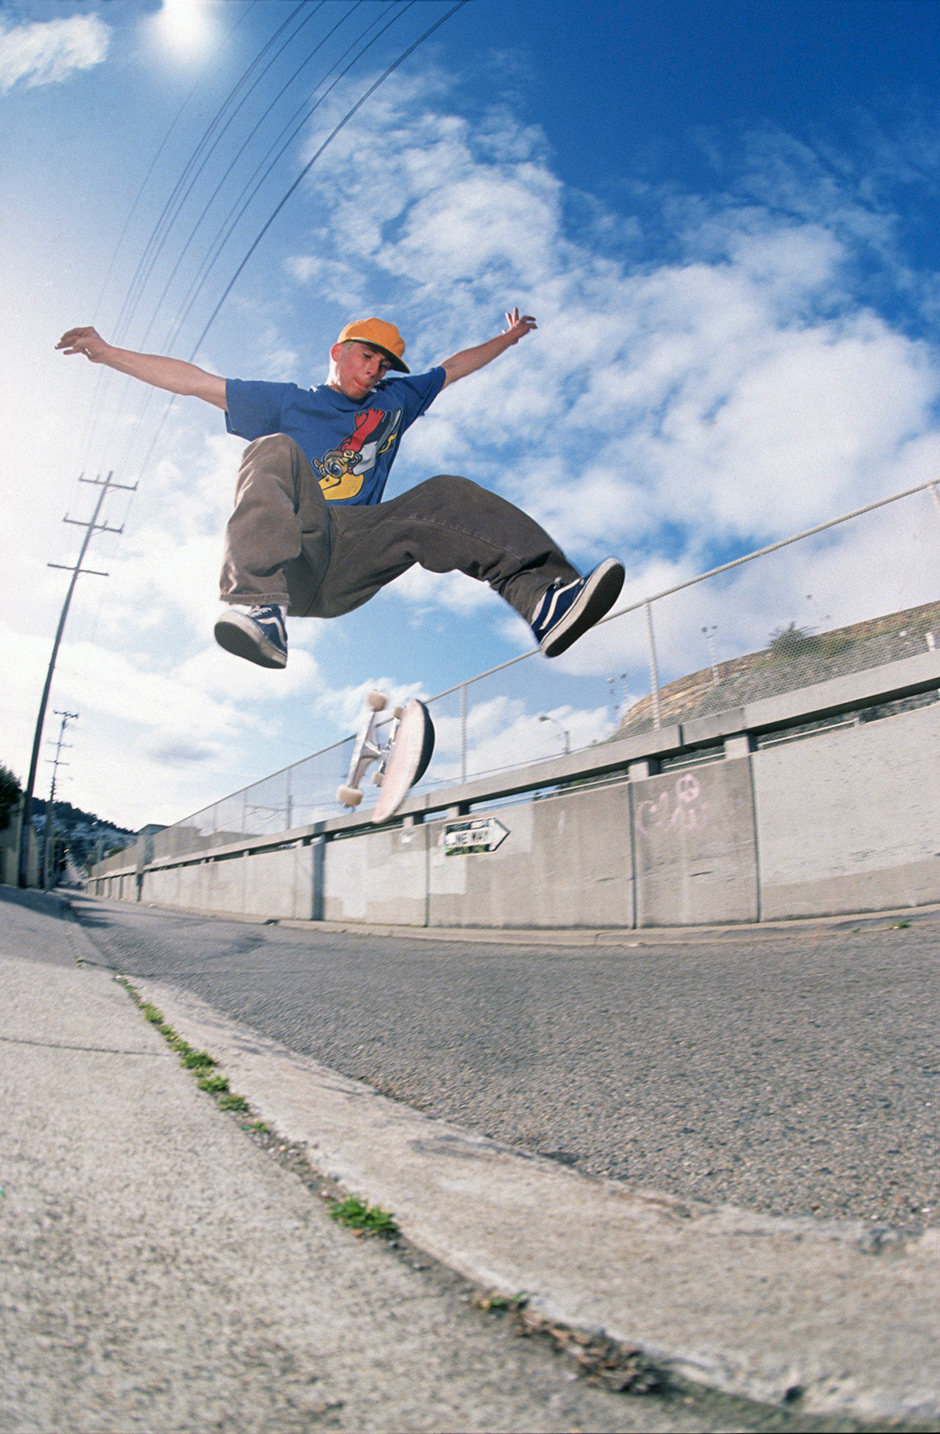 More Cardiel from his Big Brother interview.. Switch frontside heelflip. Photo: Tobin Yelland